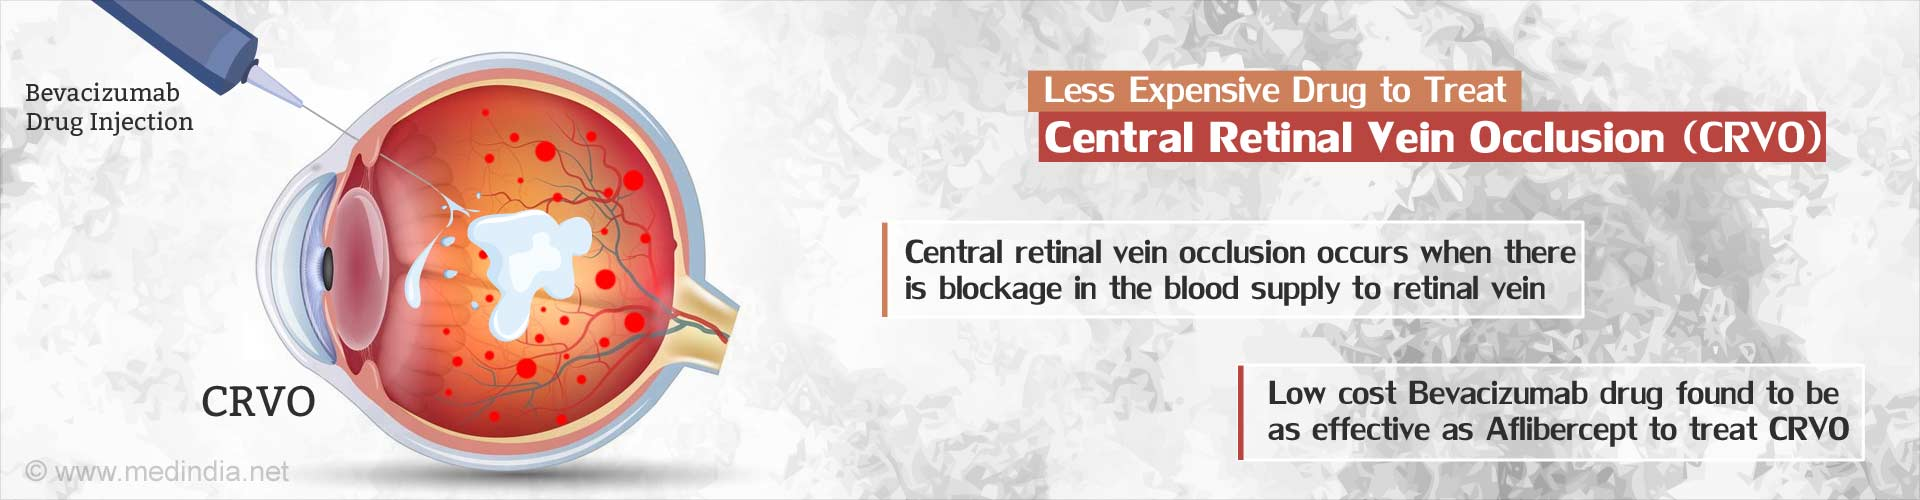 Less expensive drug to treat central retinal vein occlusion (CRVO)